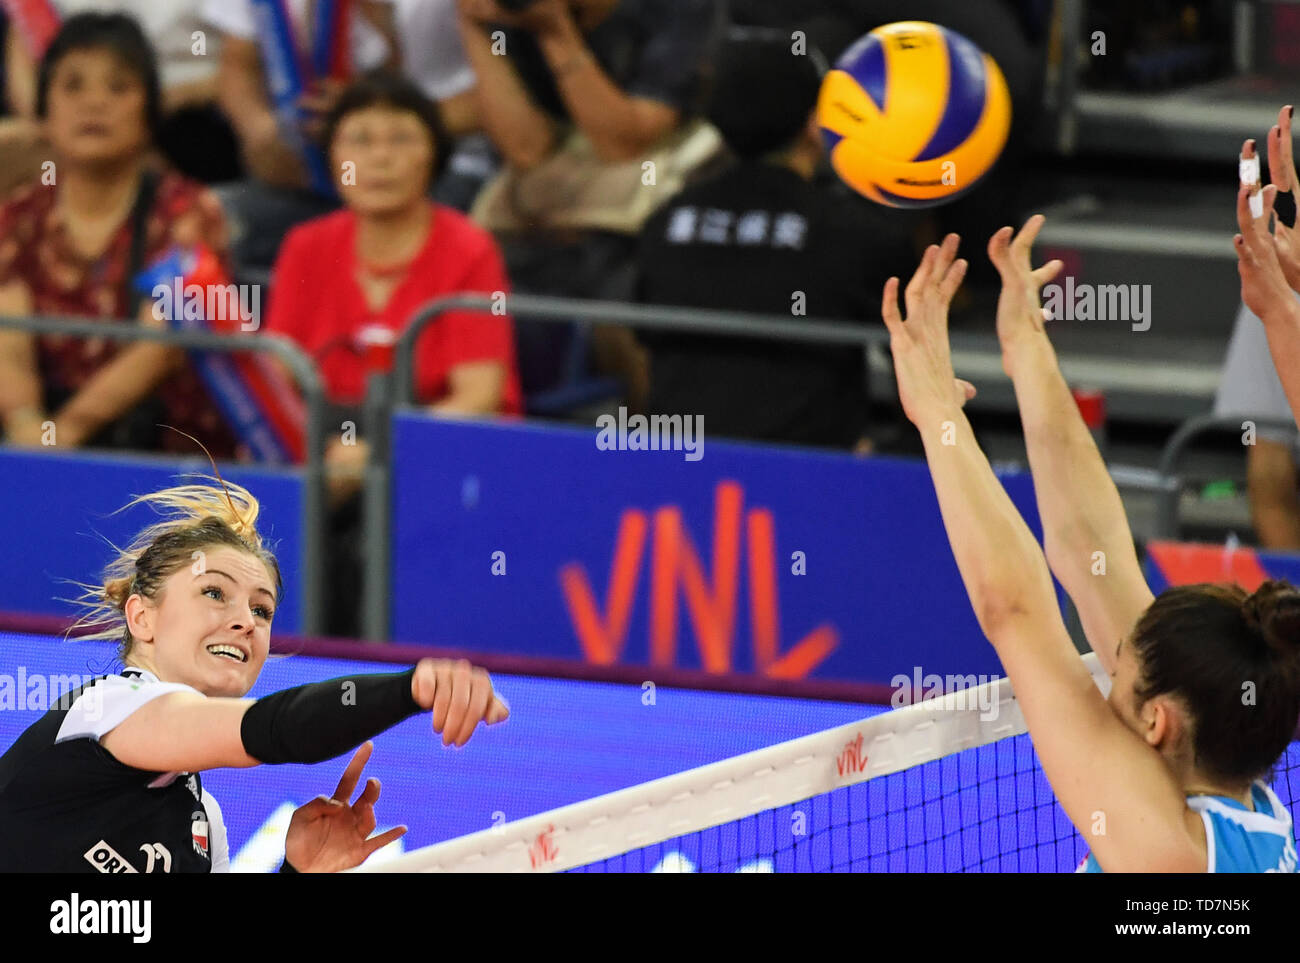 190613 Jiangmen June 13 2019 Xinhua Martyna Grajber Of Poland Spikes The Ball At